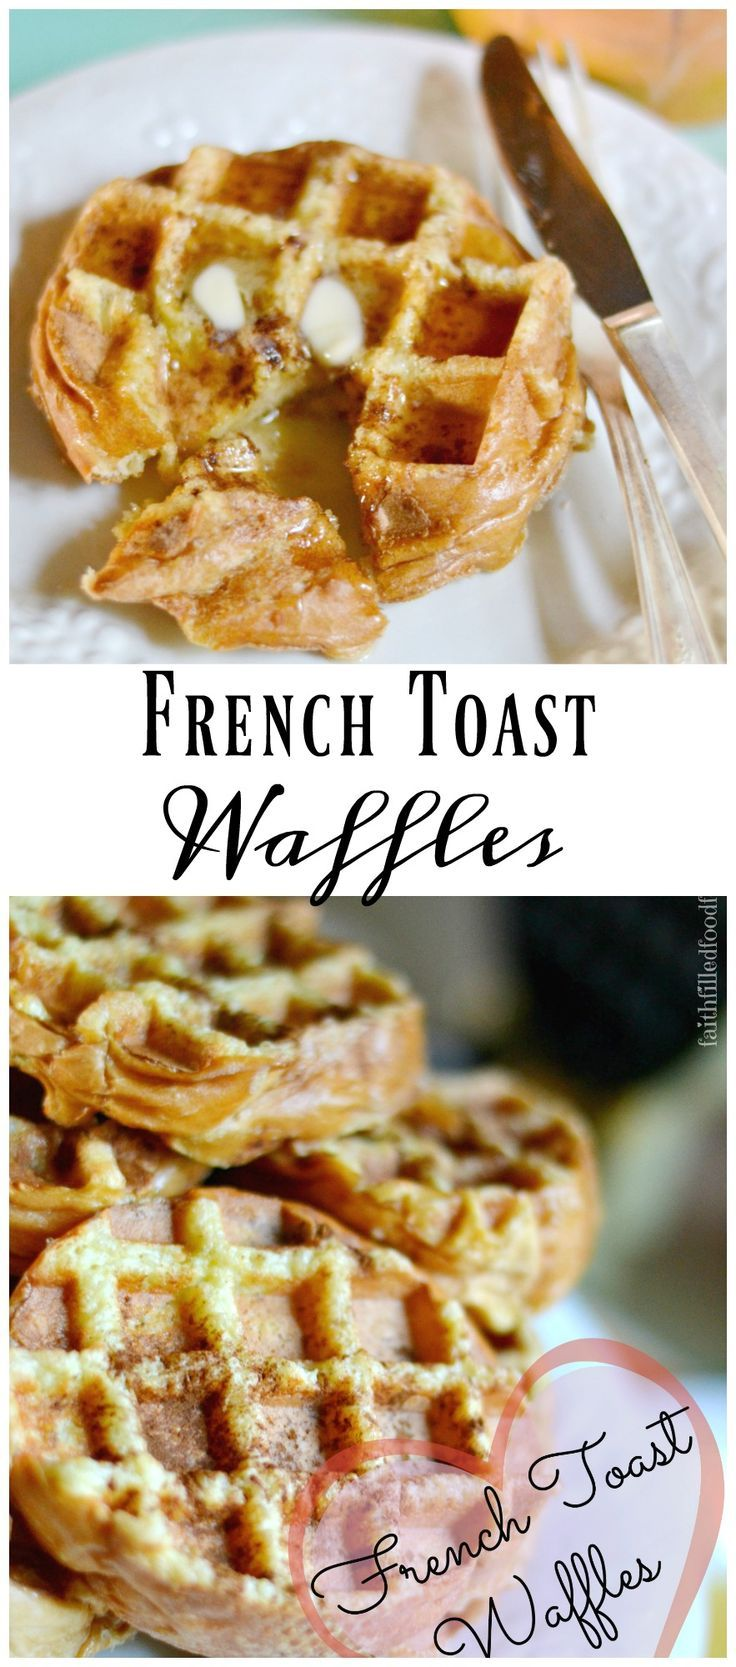 French Toast Waffles ~ so easy and so delicious. You can make these ahead and freeze for later too! YUM!